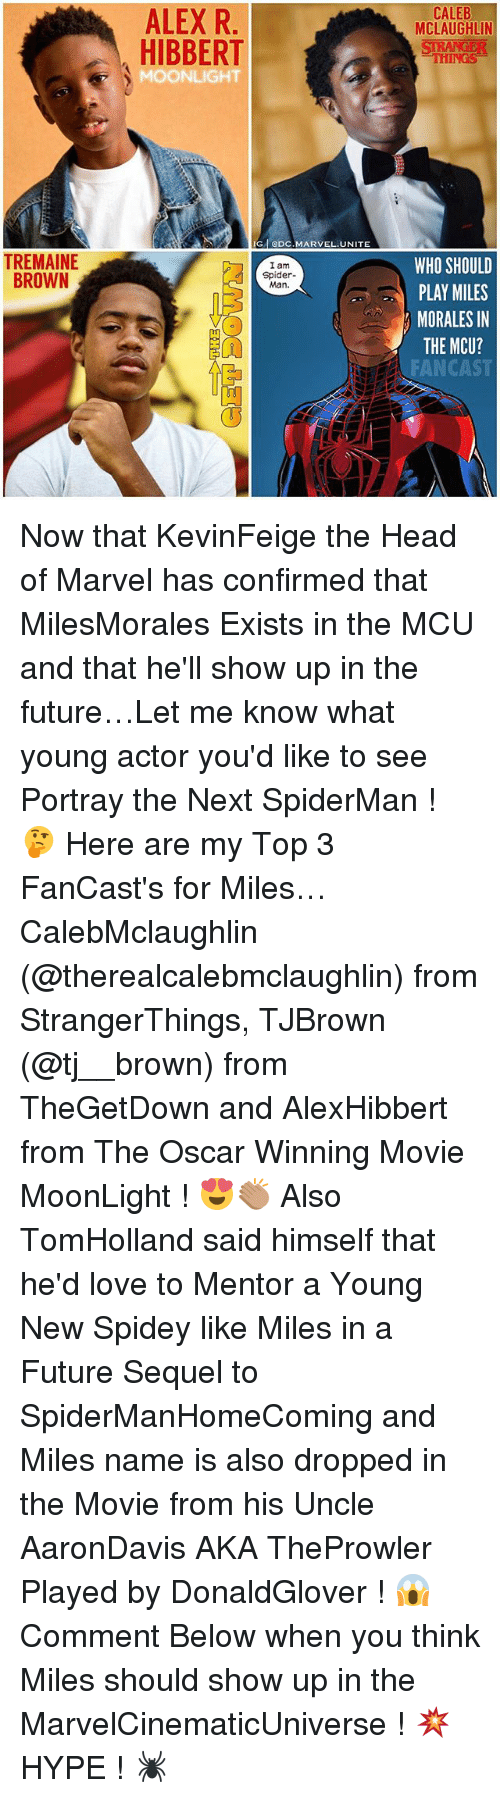 moonlighting: CALEB  MCLAUGHLIN  ALEX R  HIBBERT  THINGS  MOONLIGHT  GODC.MARVEL.UNITE  TREMAINE  BROWN  WHO SHOULD  PLAY MILES  MORALES IN  THE MCU?  FANCAST  I am  Spider-  Man.  FA Now that KevinFeige the Head of Marvel has confirmed that MilesMorales Exists in the MCU and that he'll show up in the future…Let me know what young actor you'd like to see Portray the Next SpiderMan ! 🤔 Here are my Top 3 FanCast's for Miles… CalebMclaughlin (@therealcalebmclaughlin) from StrangerThings, TJBrown (@tj__brown) from TheGetDown and AlexHibbert from The Oscar Winning Movie MoonLight ! 😍👏🏽 Also TomHolland said himself that he'd love to Mentor a Young New Spidey like Miles in a Future Sequel to SpiderManHomeComing and Miles name is also dropped in the Movie from his Uncle AaronDavis AKA TheProwler Played by DonaldGlover ! 😱 Comment Below when you think Miles should show up in the MarvelCinematicUniverse ! 💥 HYPE ! 🕷